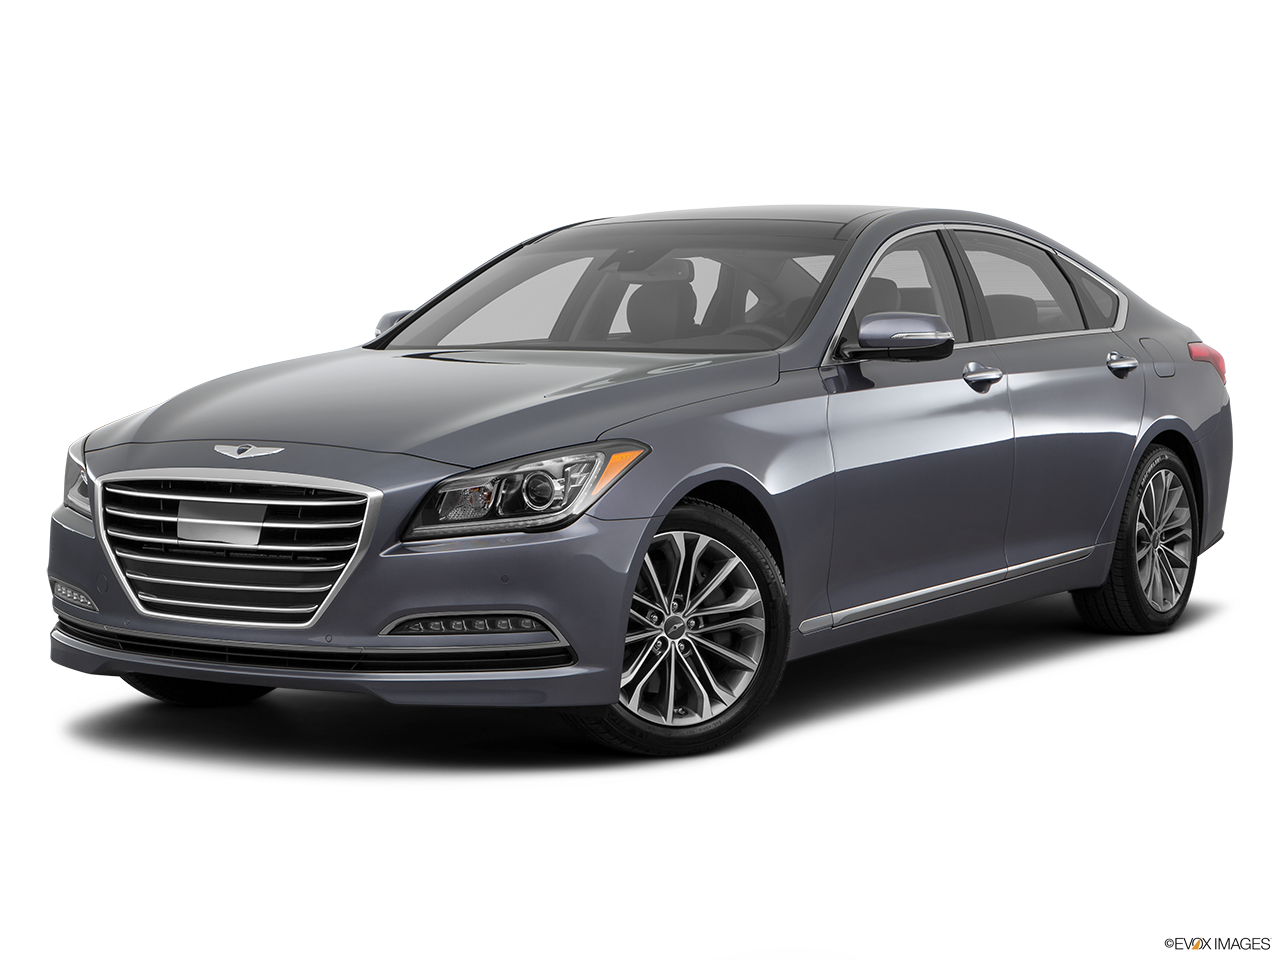 2016 hyundai genesis inland empire ontario hyundai. Black Bedroom Furniture Sets. Home Design Ideas